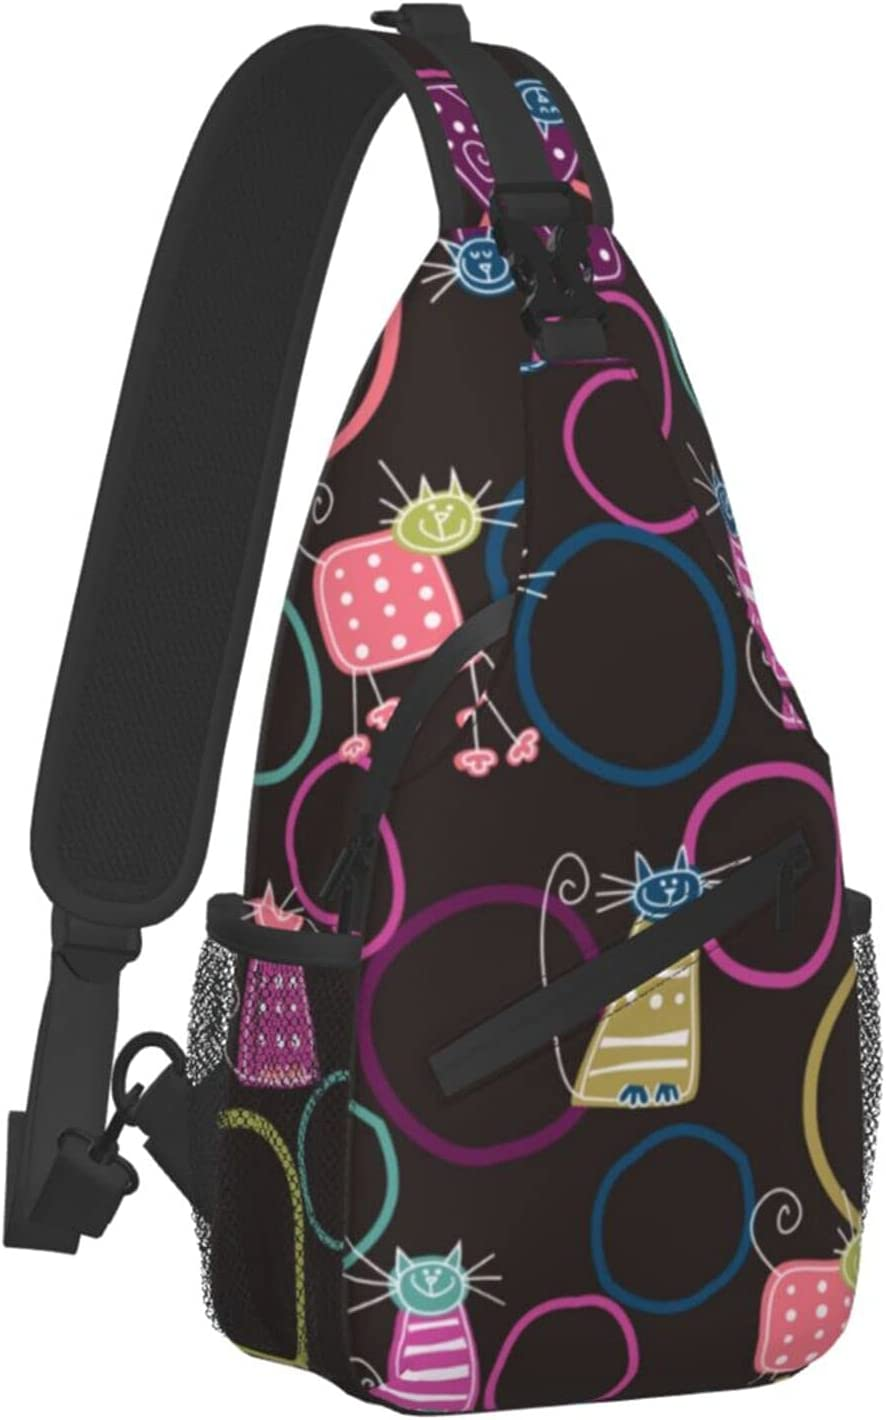 Sling Backpack NEW Travel Hiking Daypack Funny favorite Rainbow Rope Cat Art